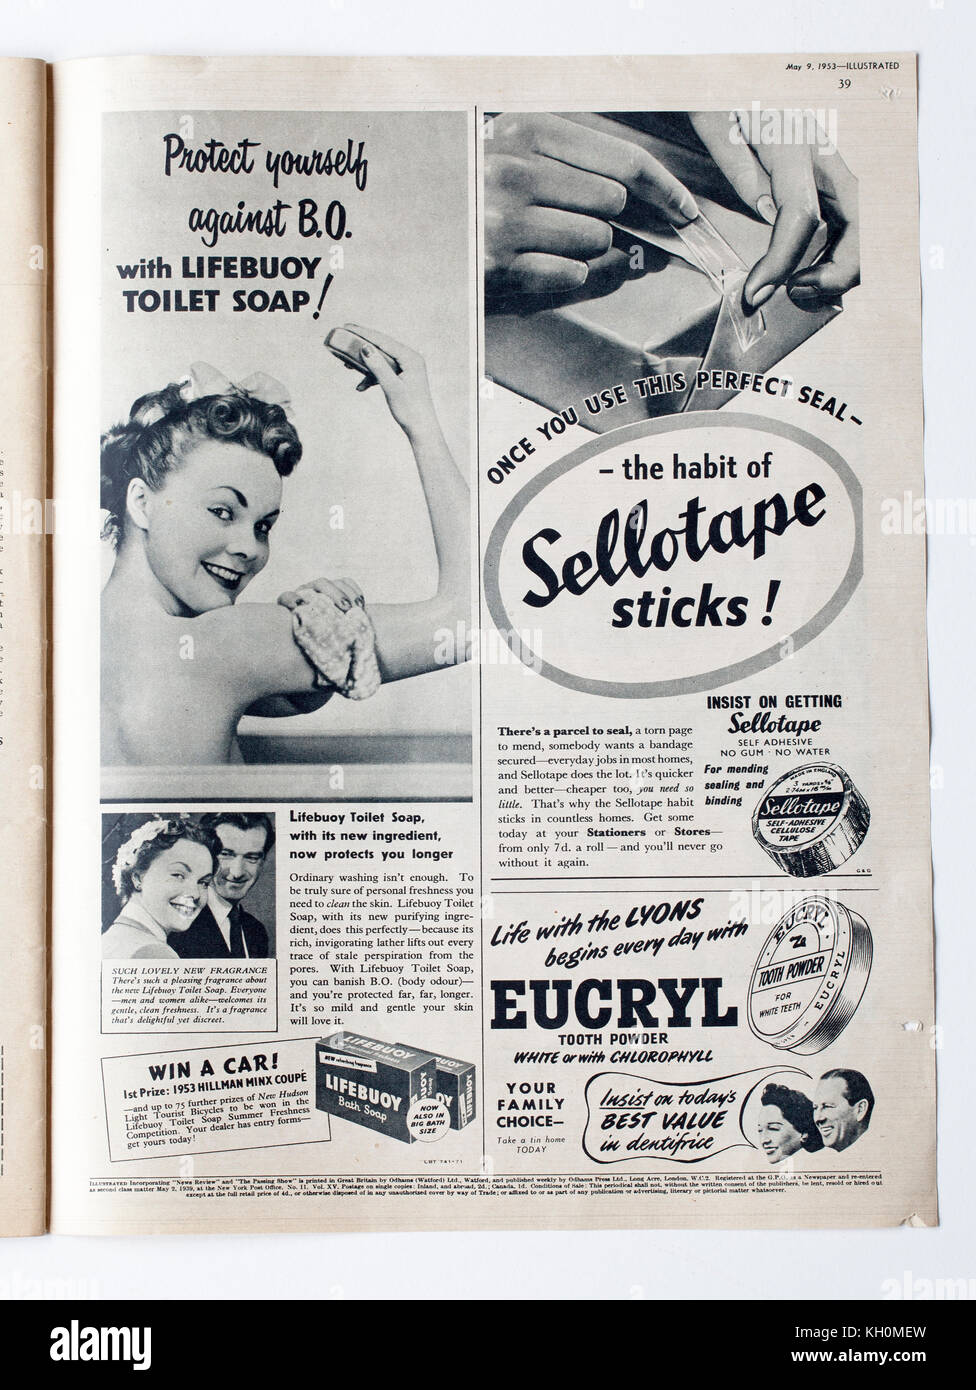 Vintage 1950s Advertising in Illustrated Magazine - Stock Image